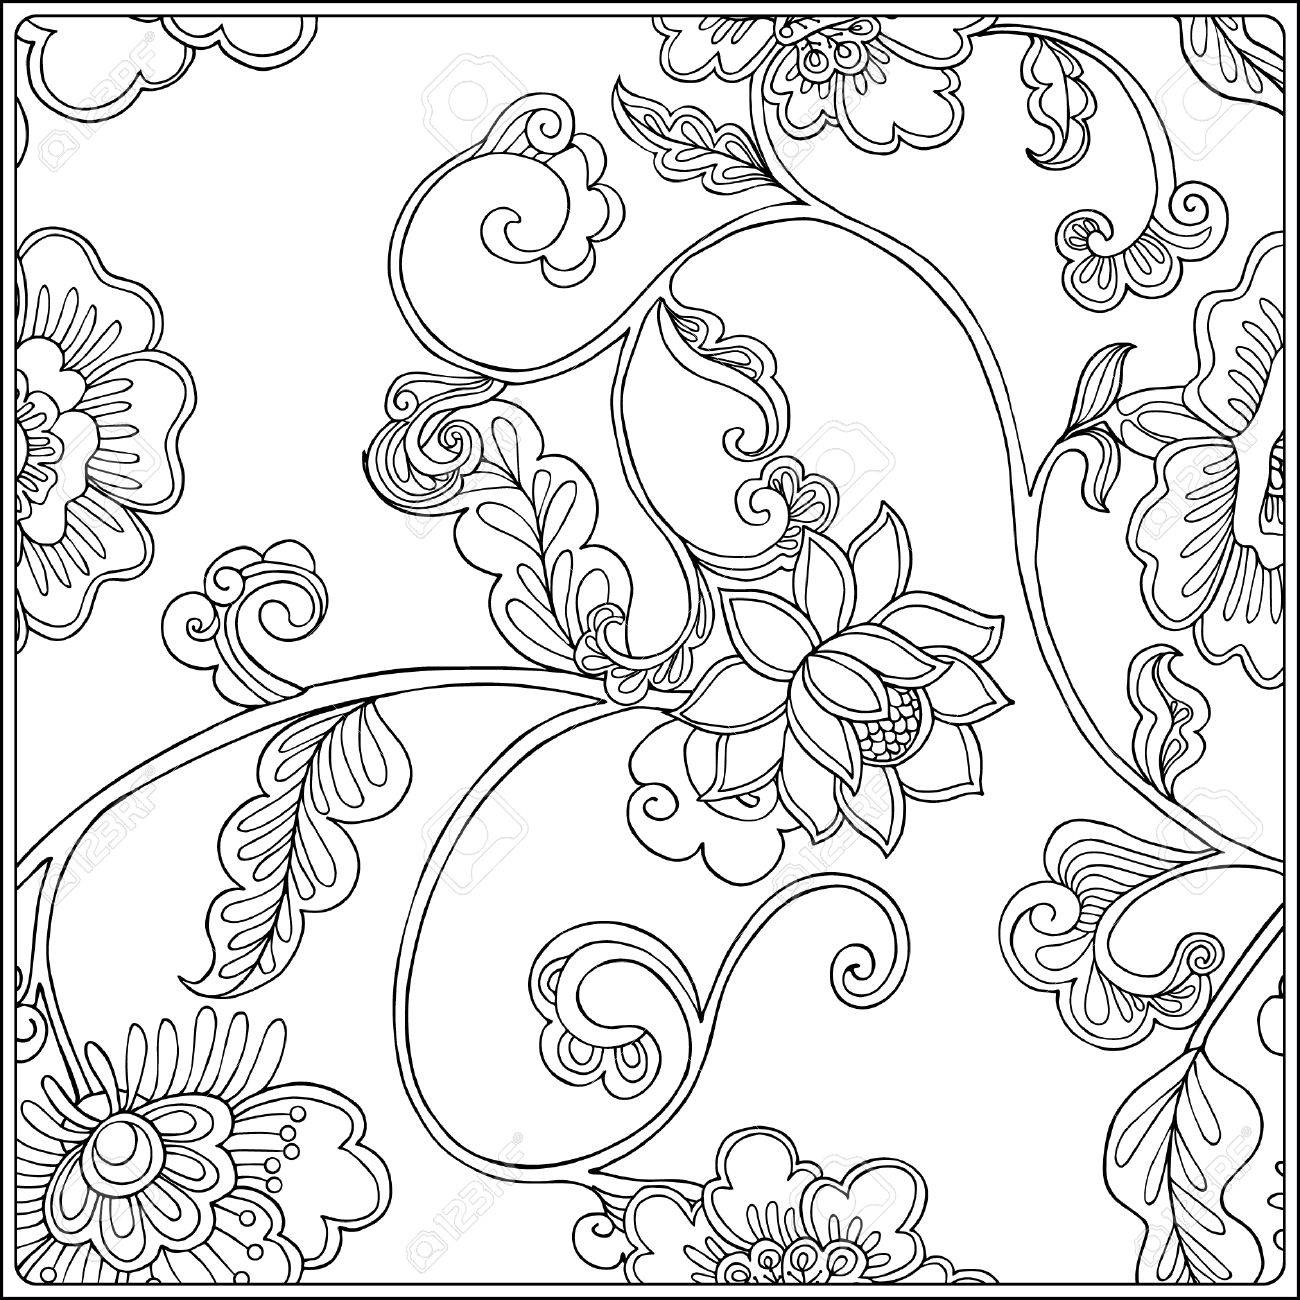 Vintage Floral Pattern Outline Drawing Coloring Book For Adult